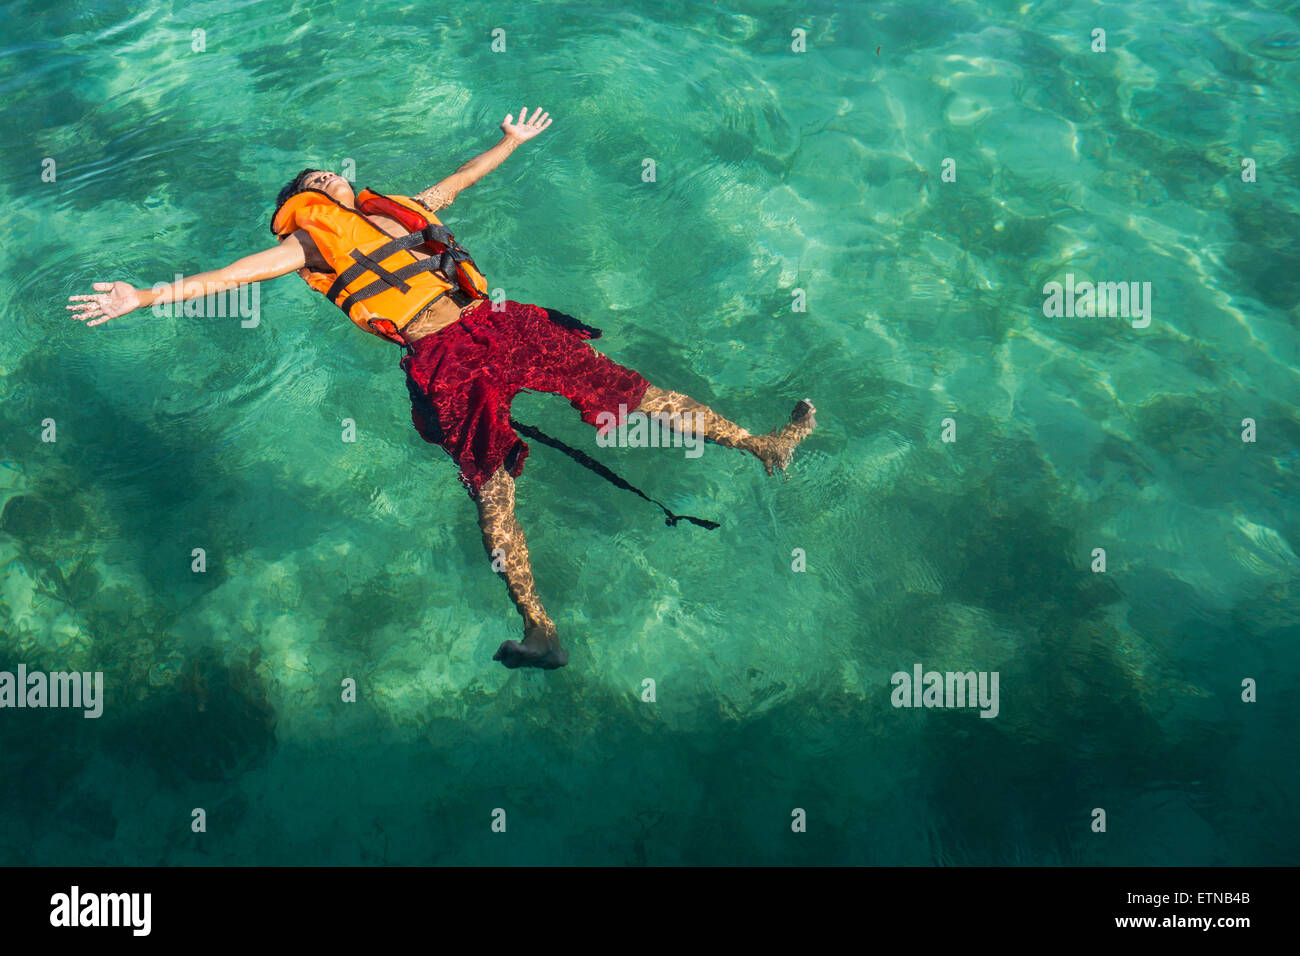 Teenage boy wearing a life jacket, floating in the sea, Salakan Island, Semporna, Sabah, Malaysia - Stock Image